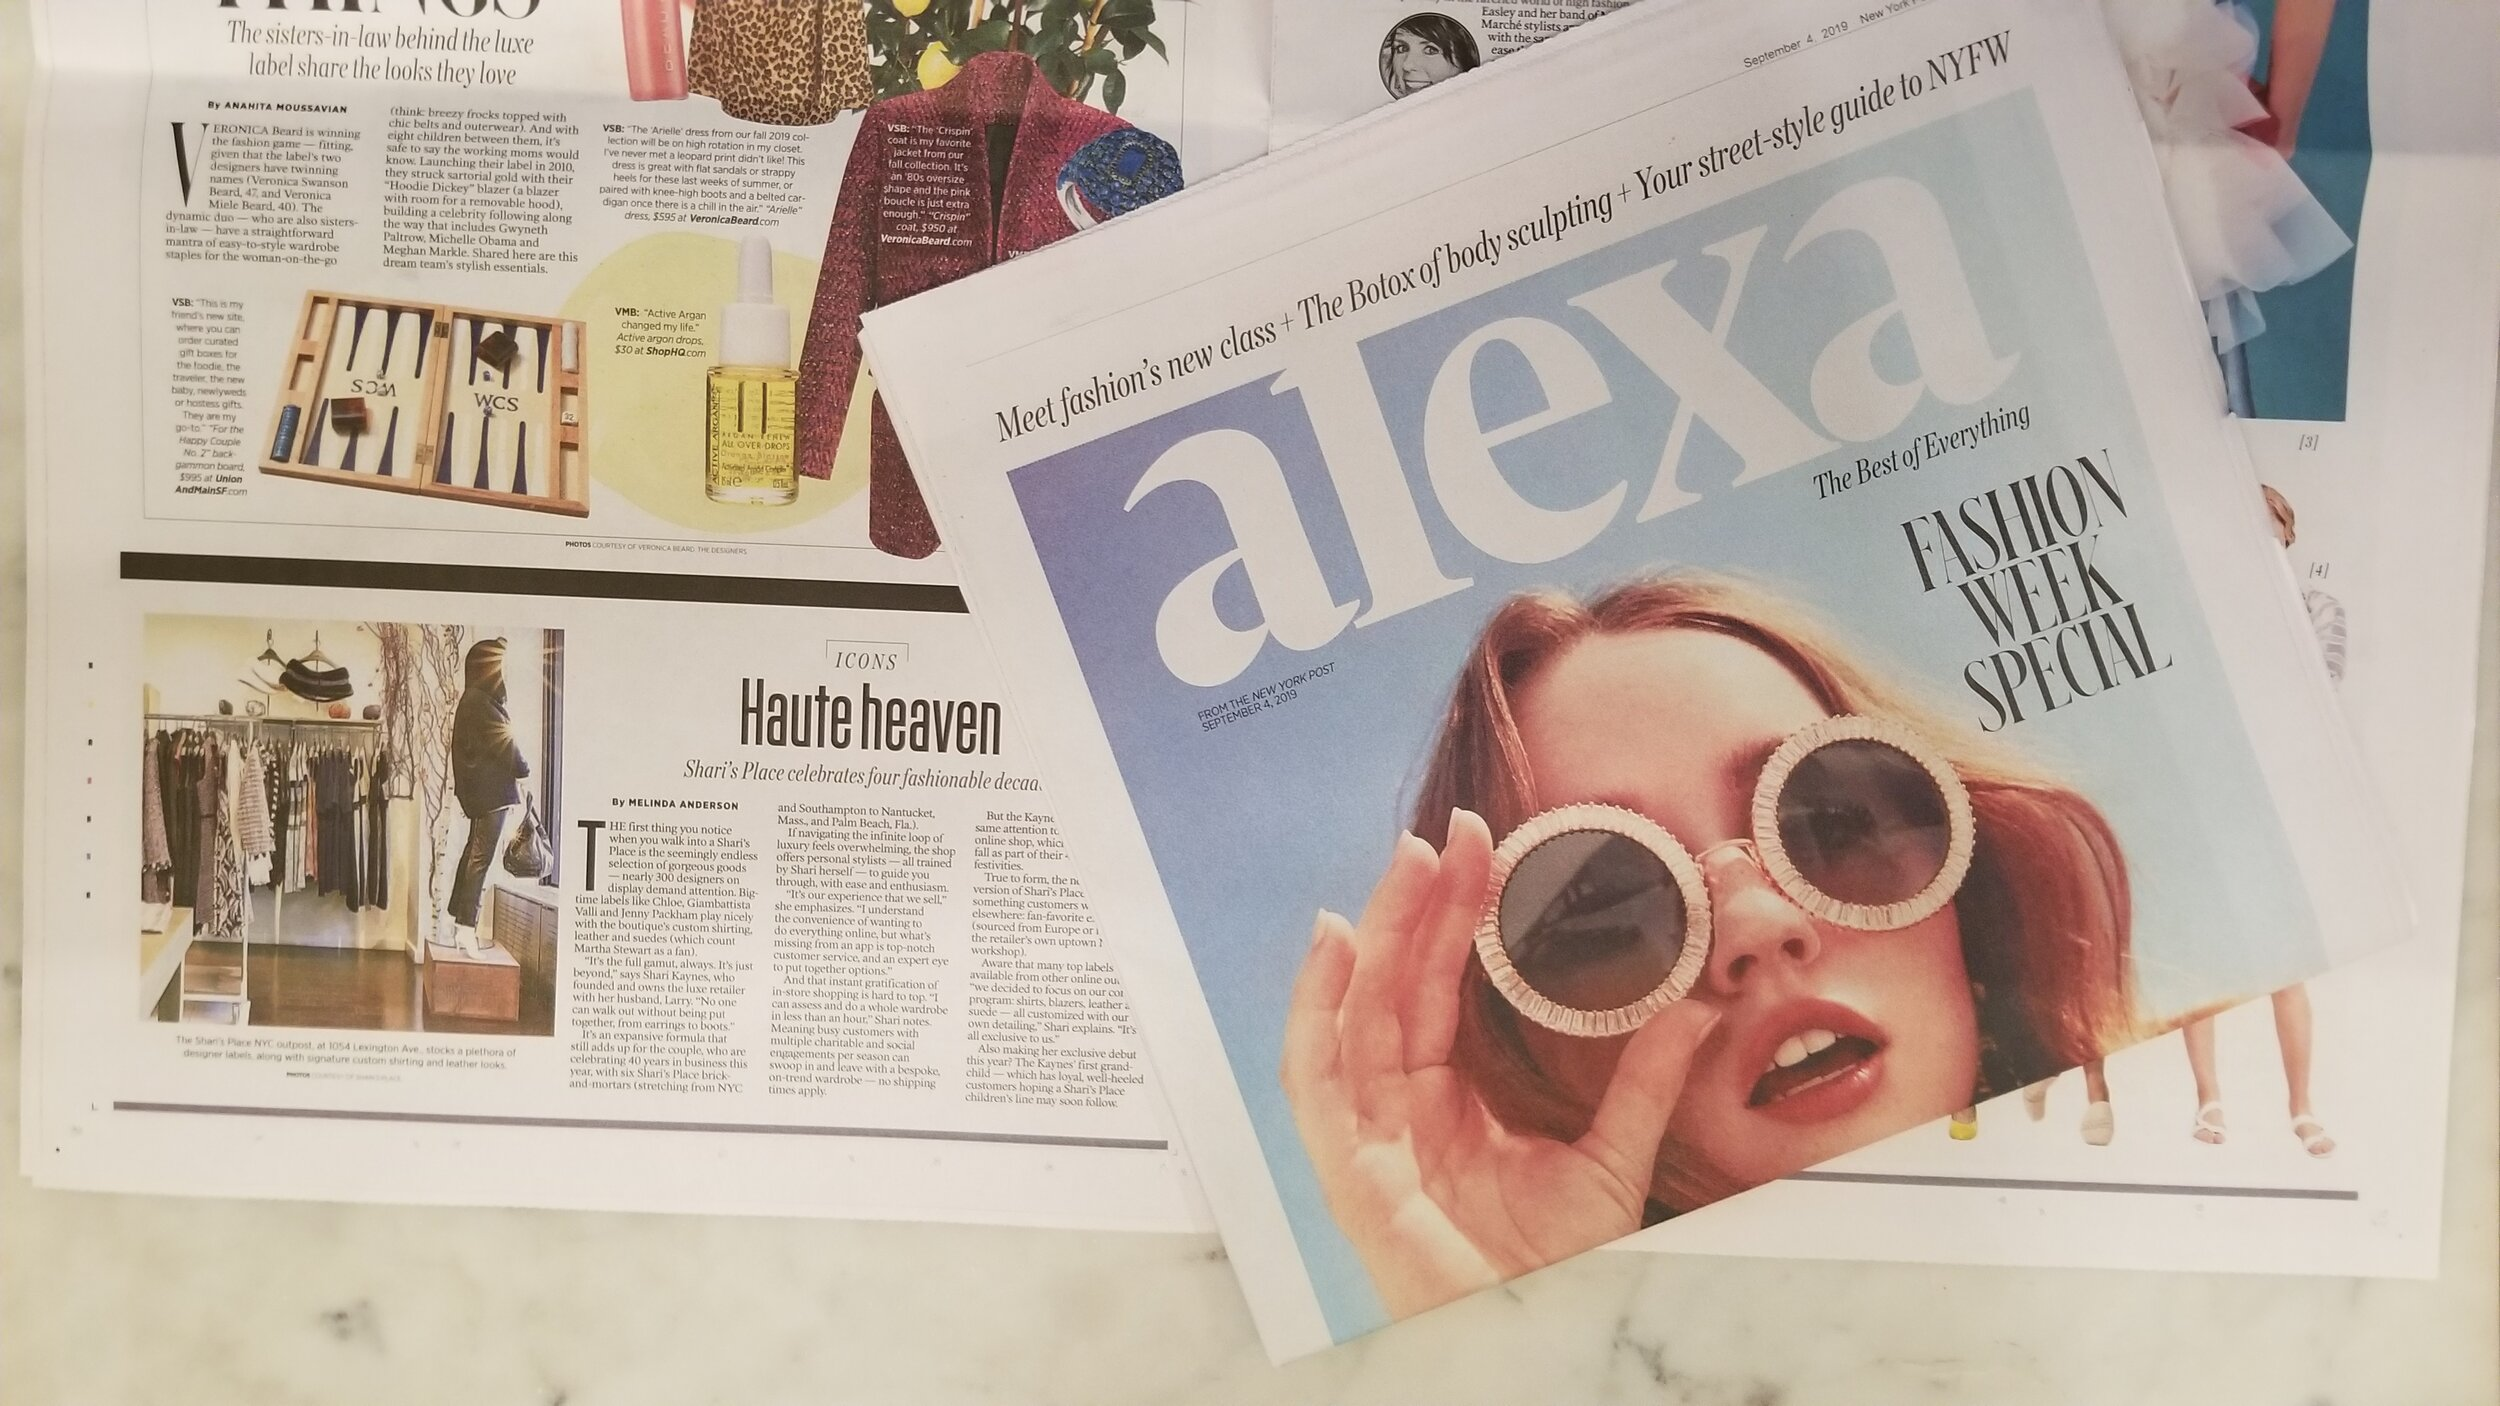 New York Post ALEXA, September 4th 2019